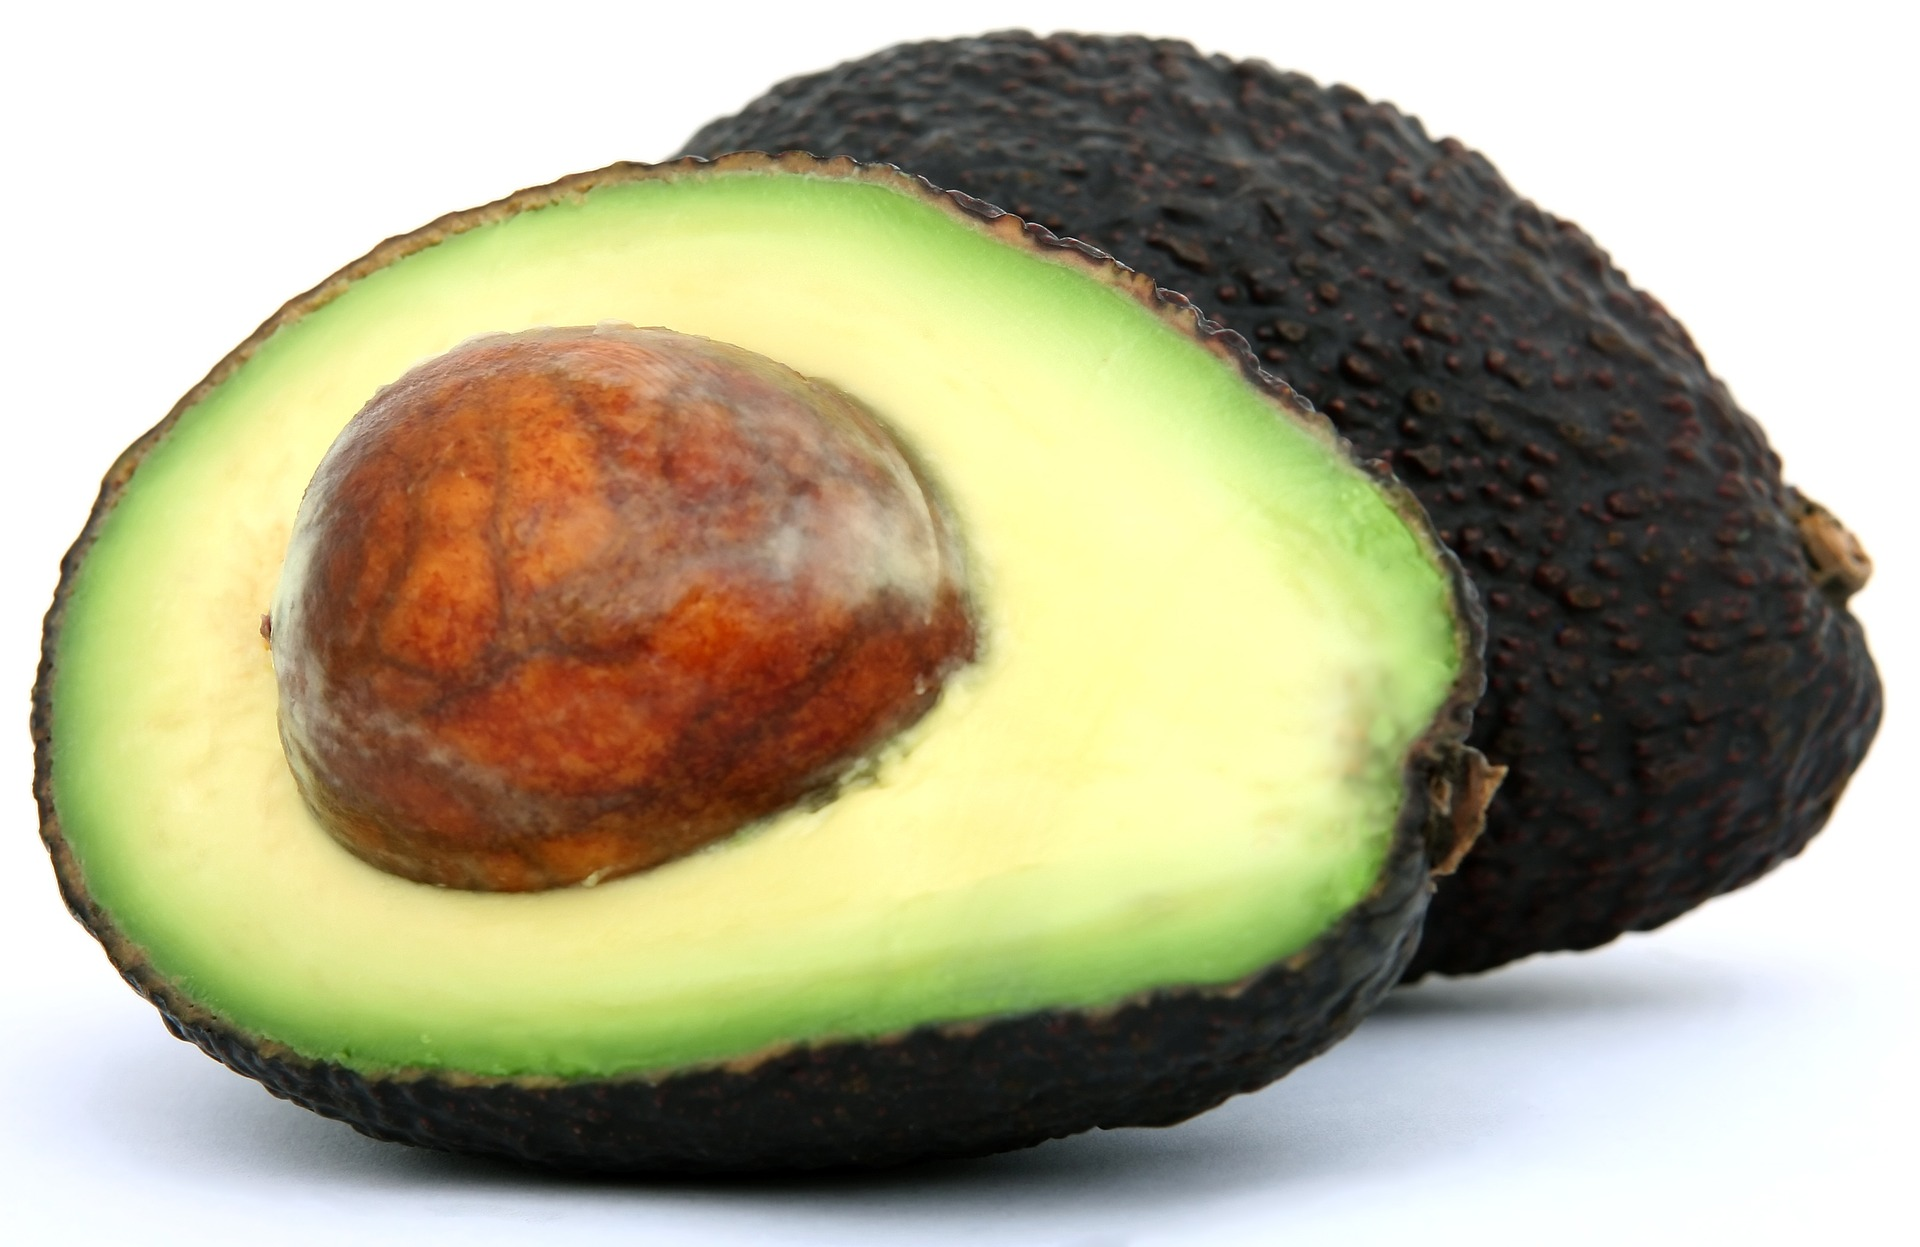 Avocados – For Depression, Energy and Heart